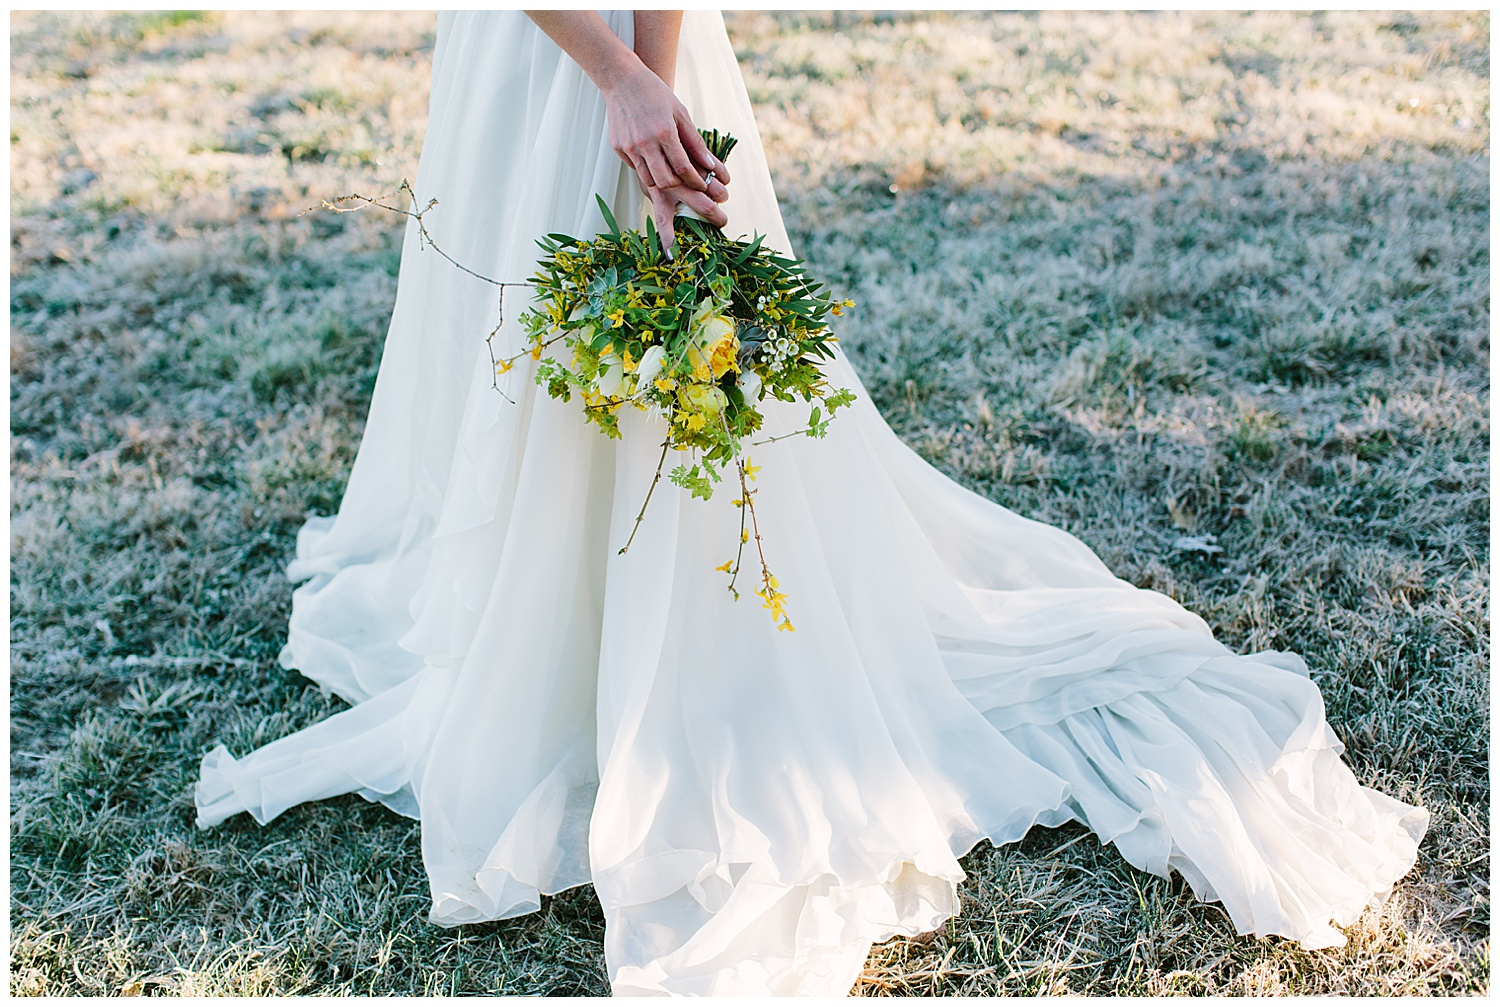 trent.and.kendra.photography.foxhollow.farm.elopement-74.jpg